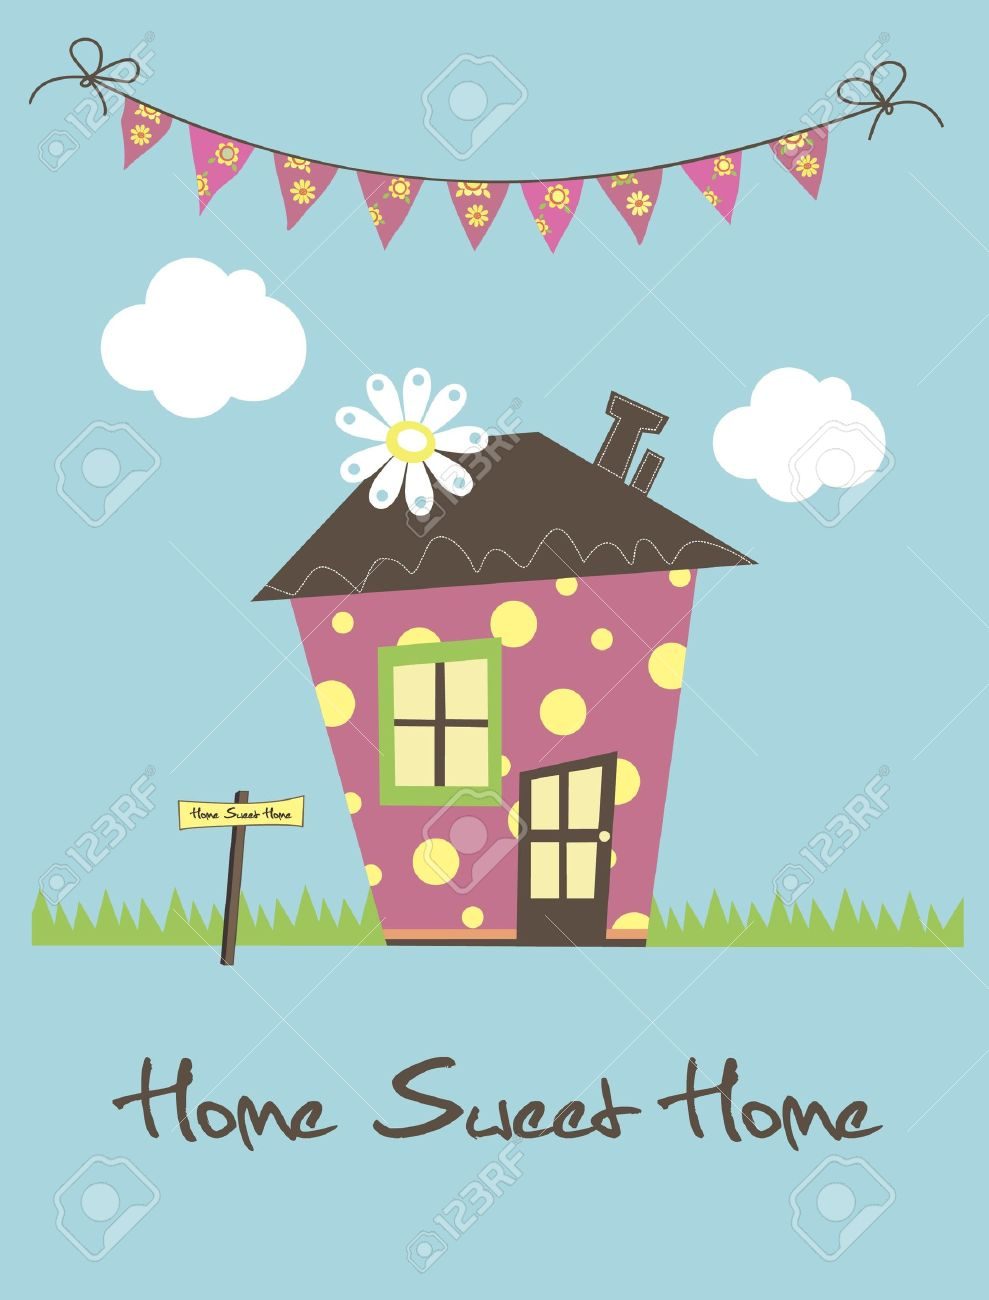 1ef2e5c7f891 Home Sweet Home Card Illustration Royalty Free Cliparts, Vectors ...